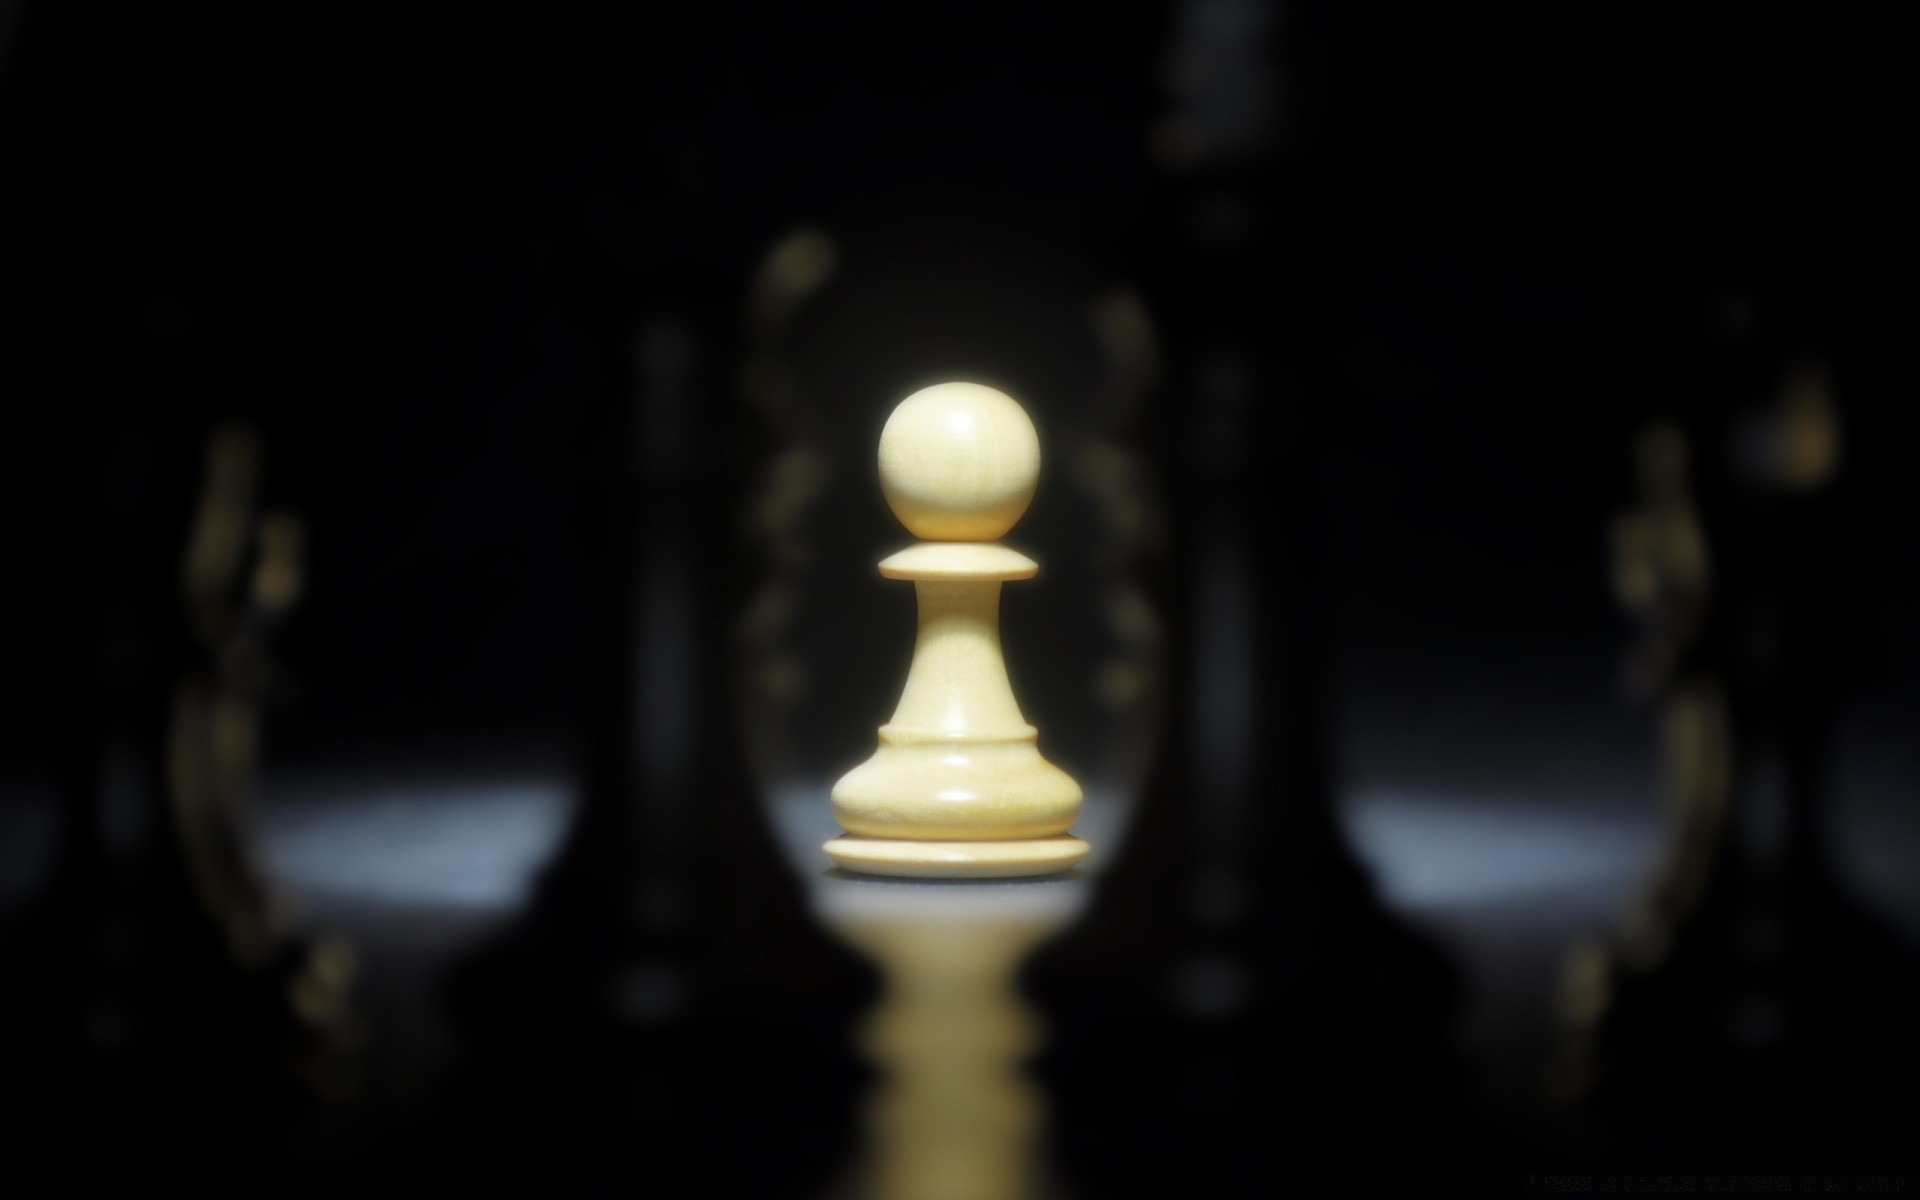 Pawn Chess Board IPhone Wallpapers For Free Source Knight Wallpaper Hd